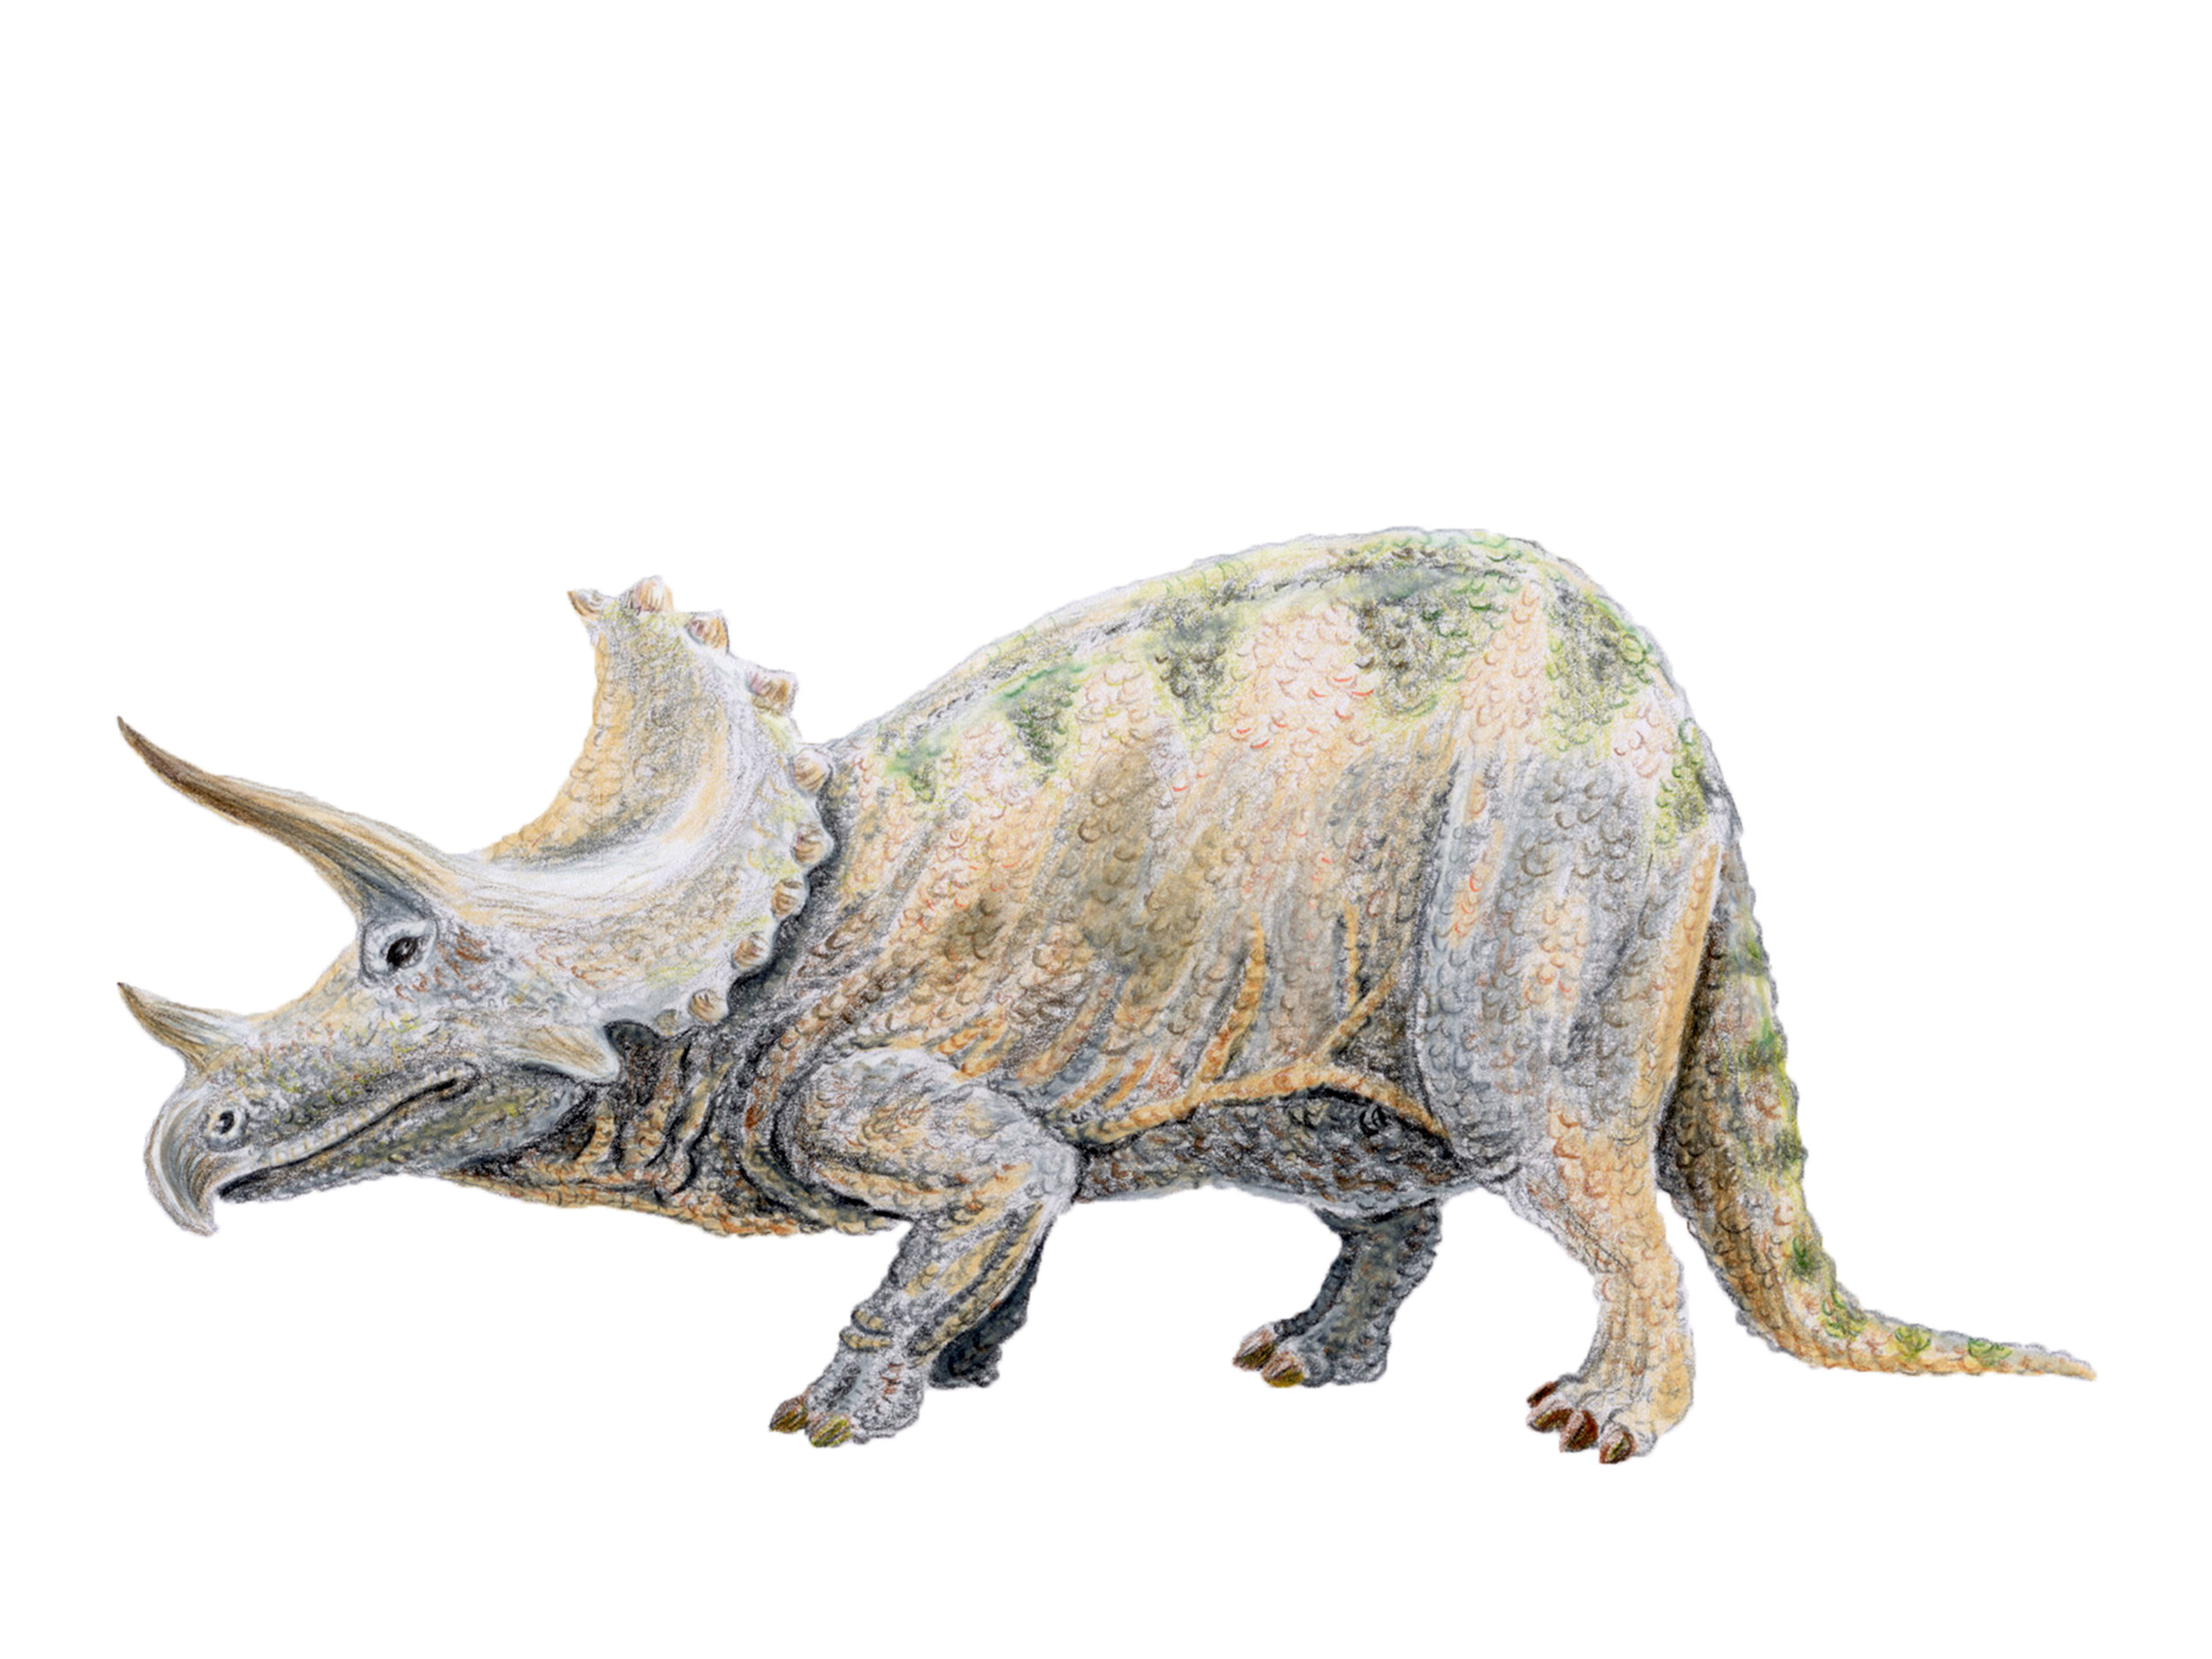 Triceratops prorsus (1910's style)